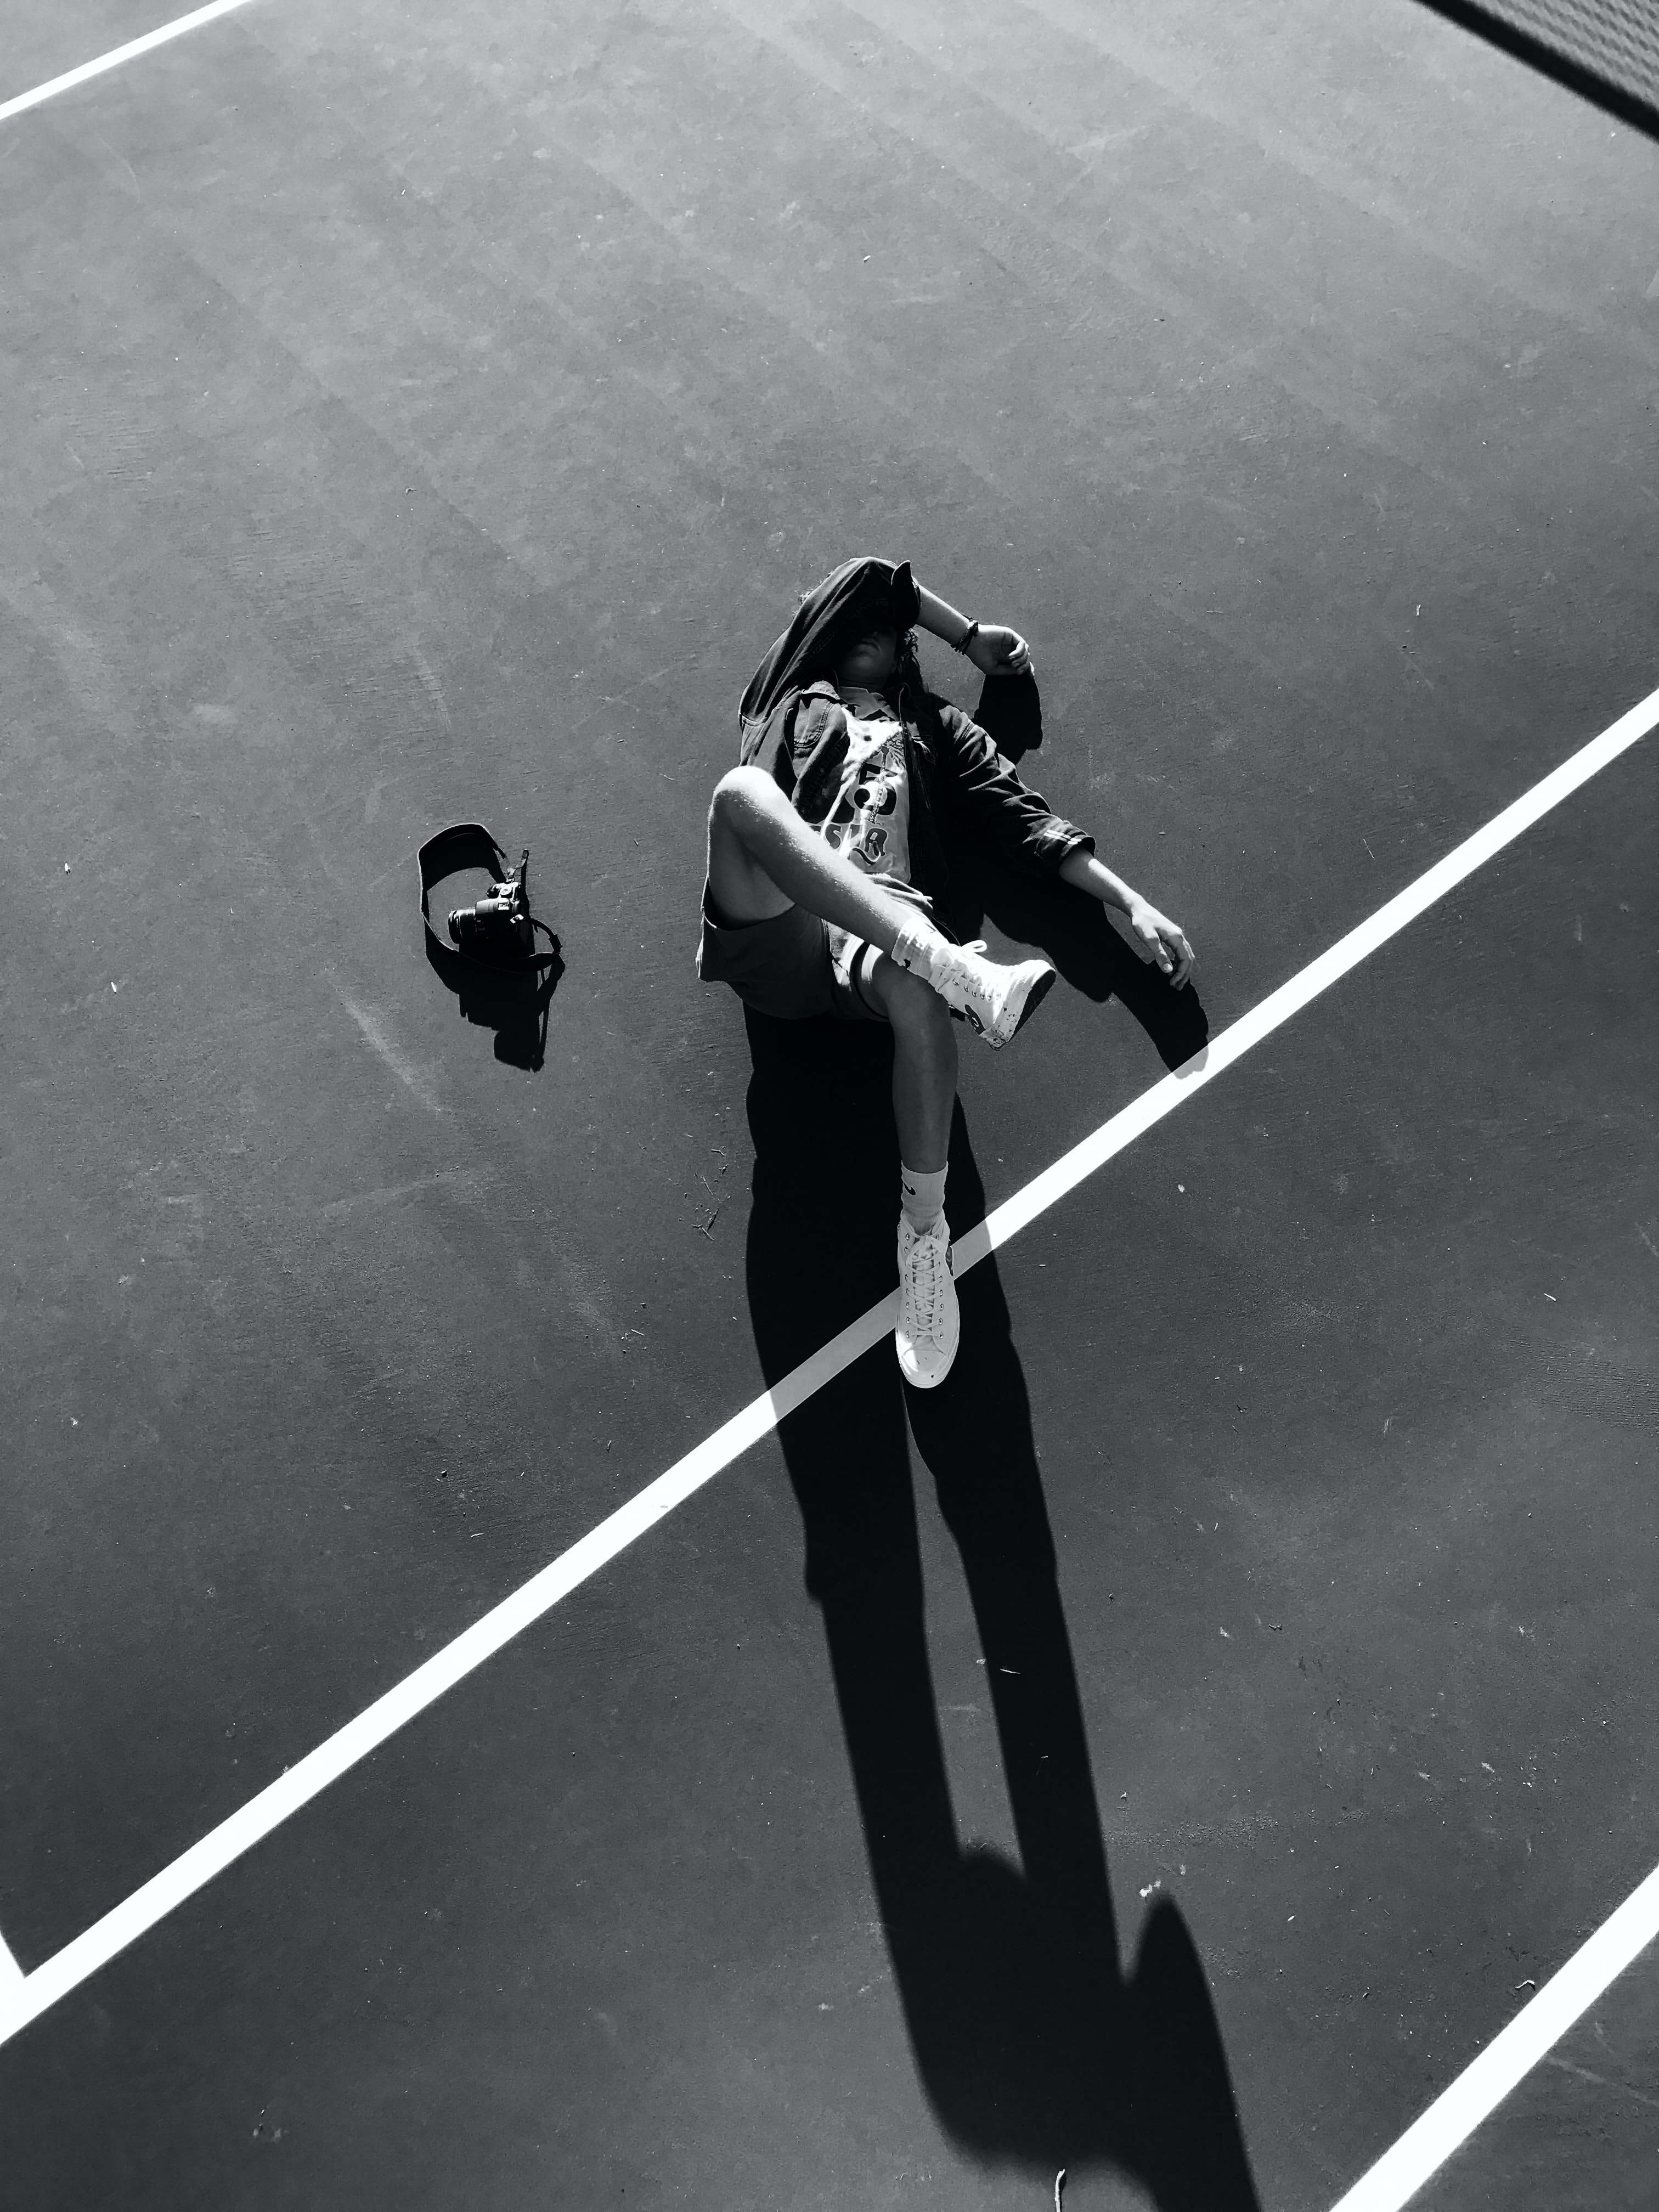 grayscale photo of athlete lying down on court